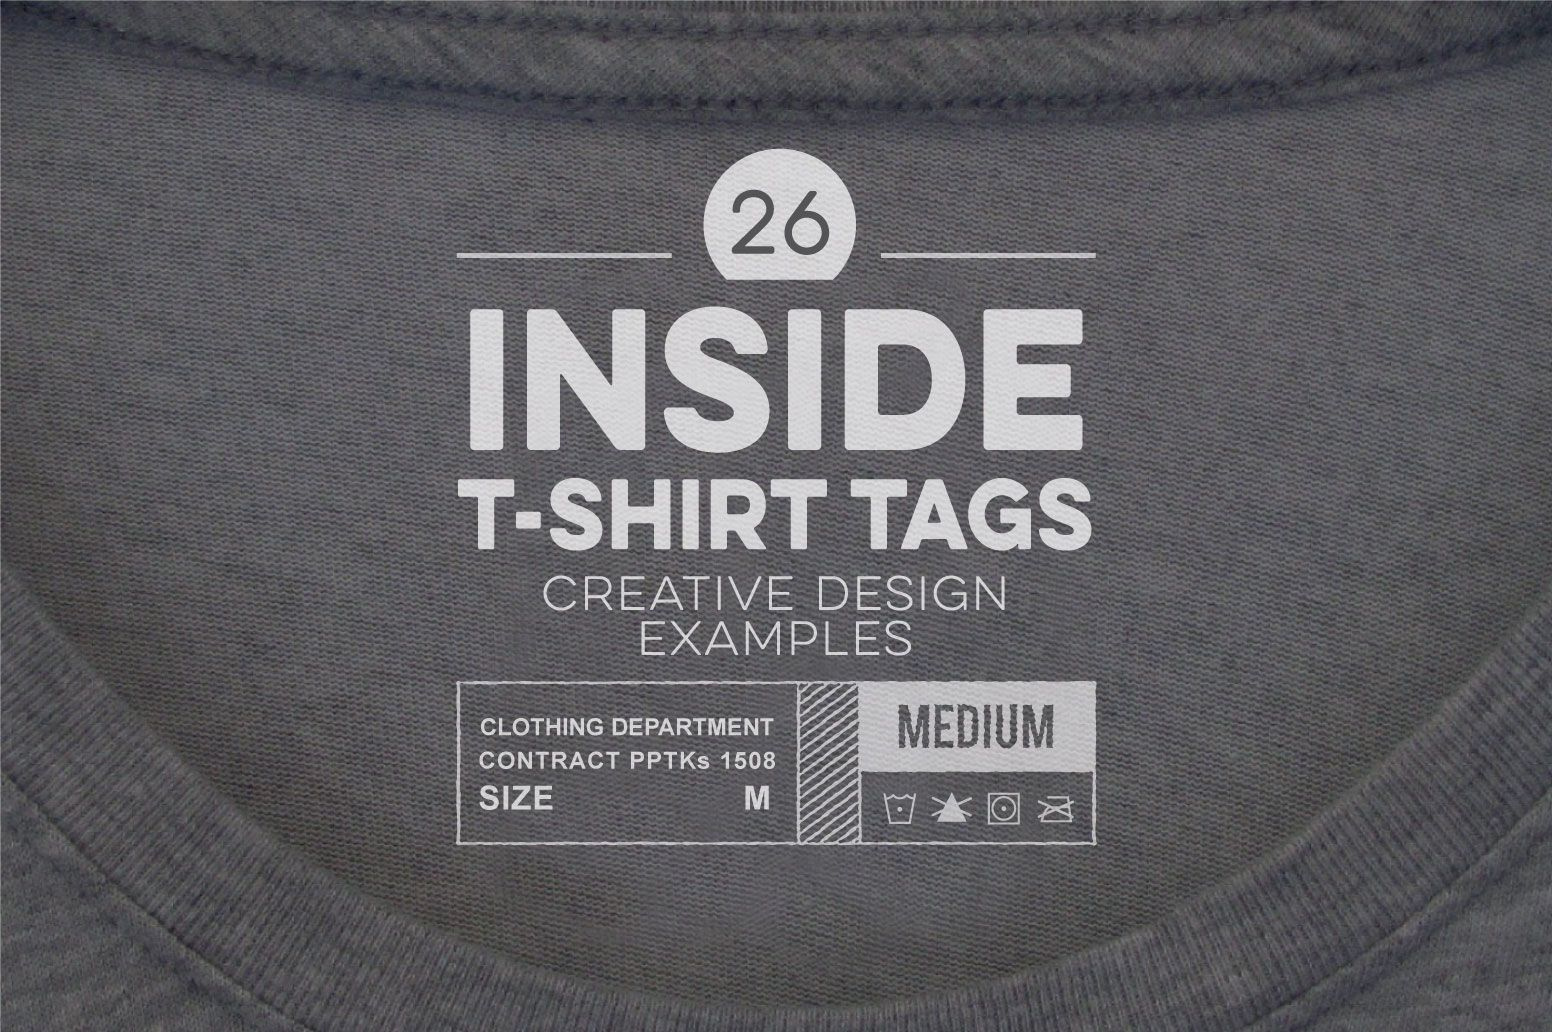 26 Outstanding Inside T Shirt Tag Examples To Inspire Your Next